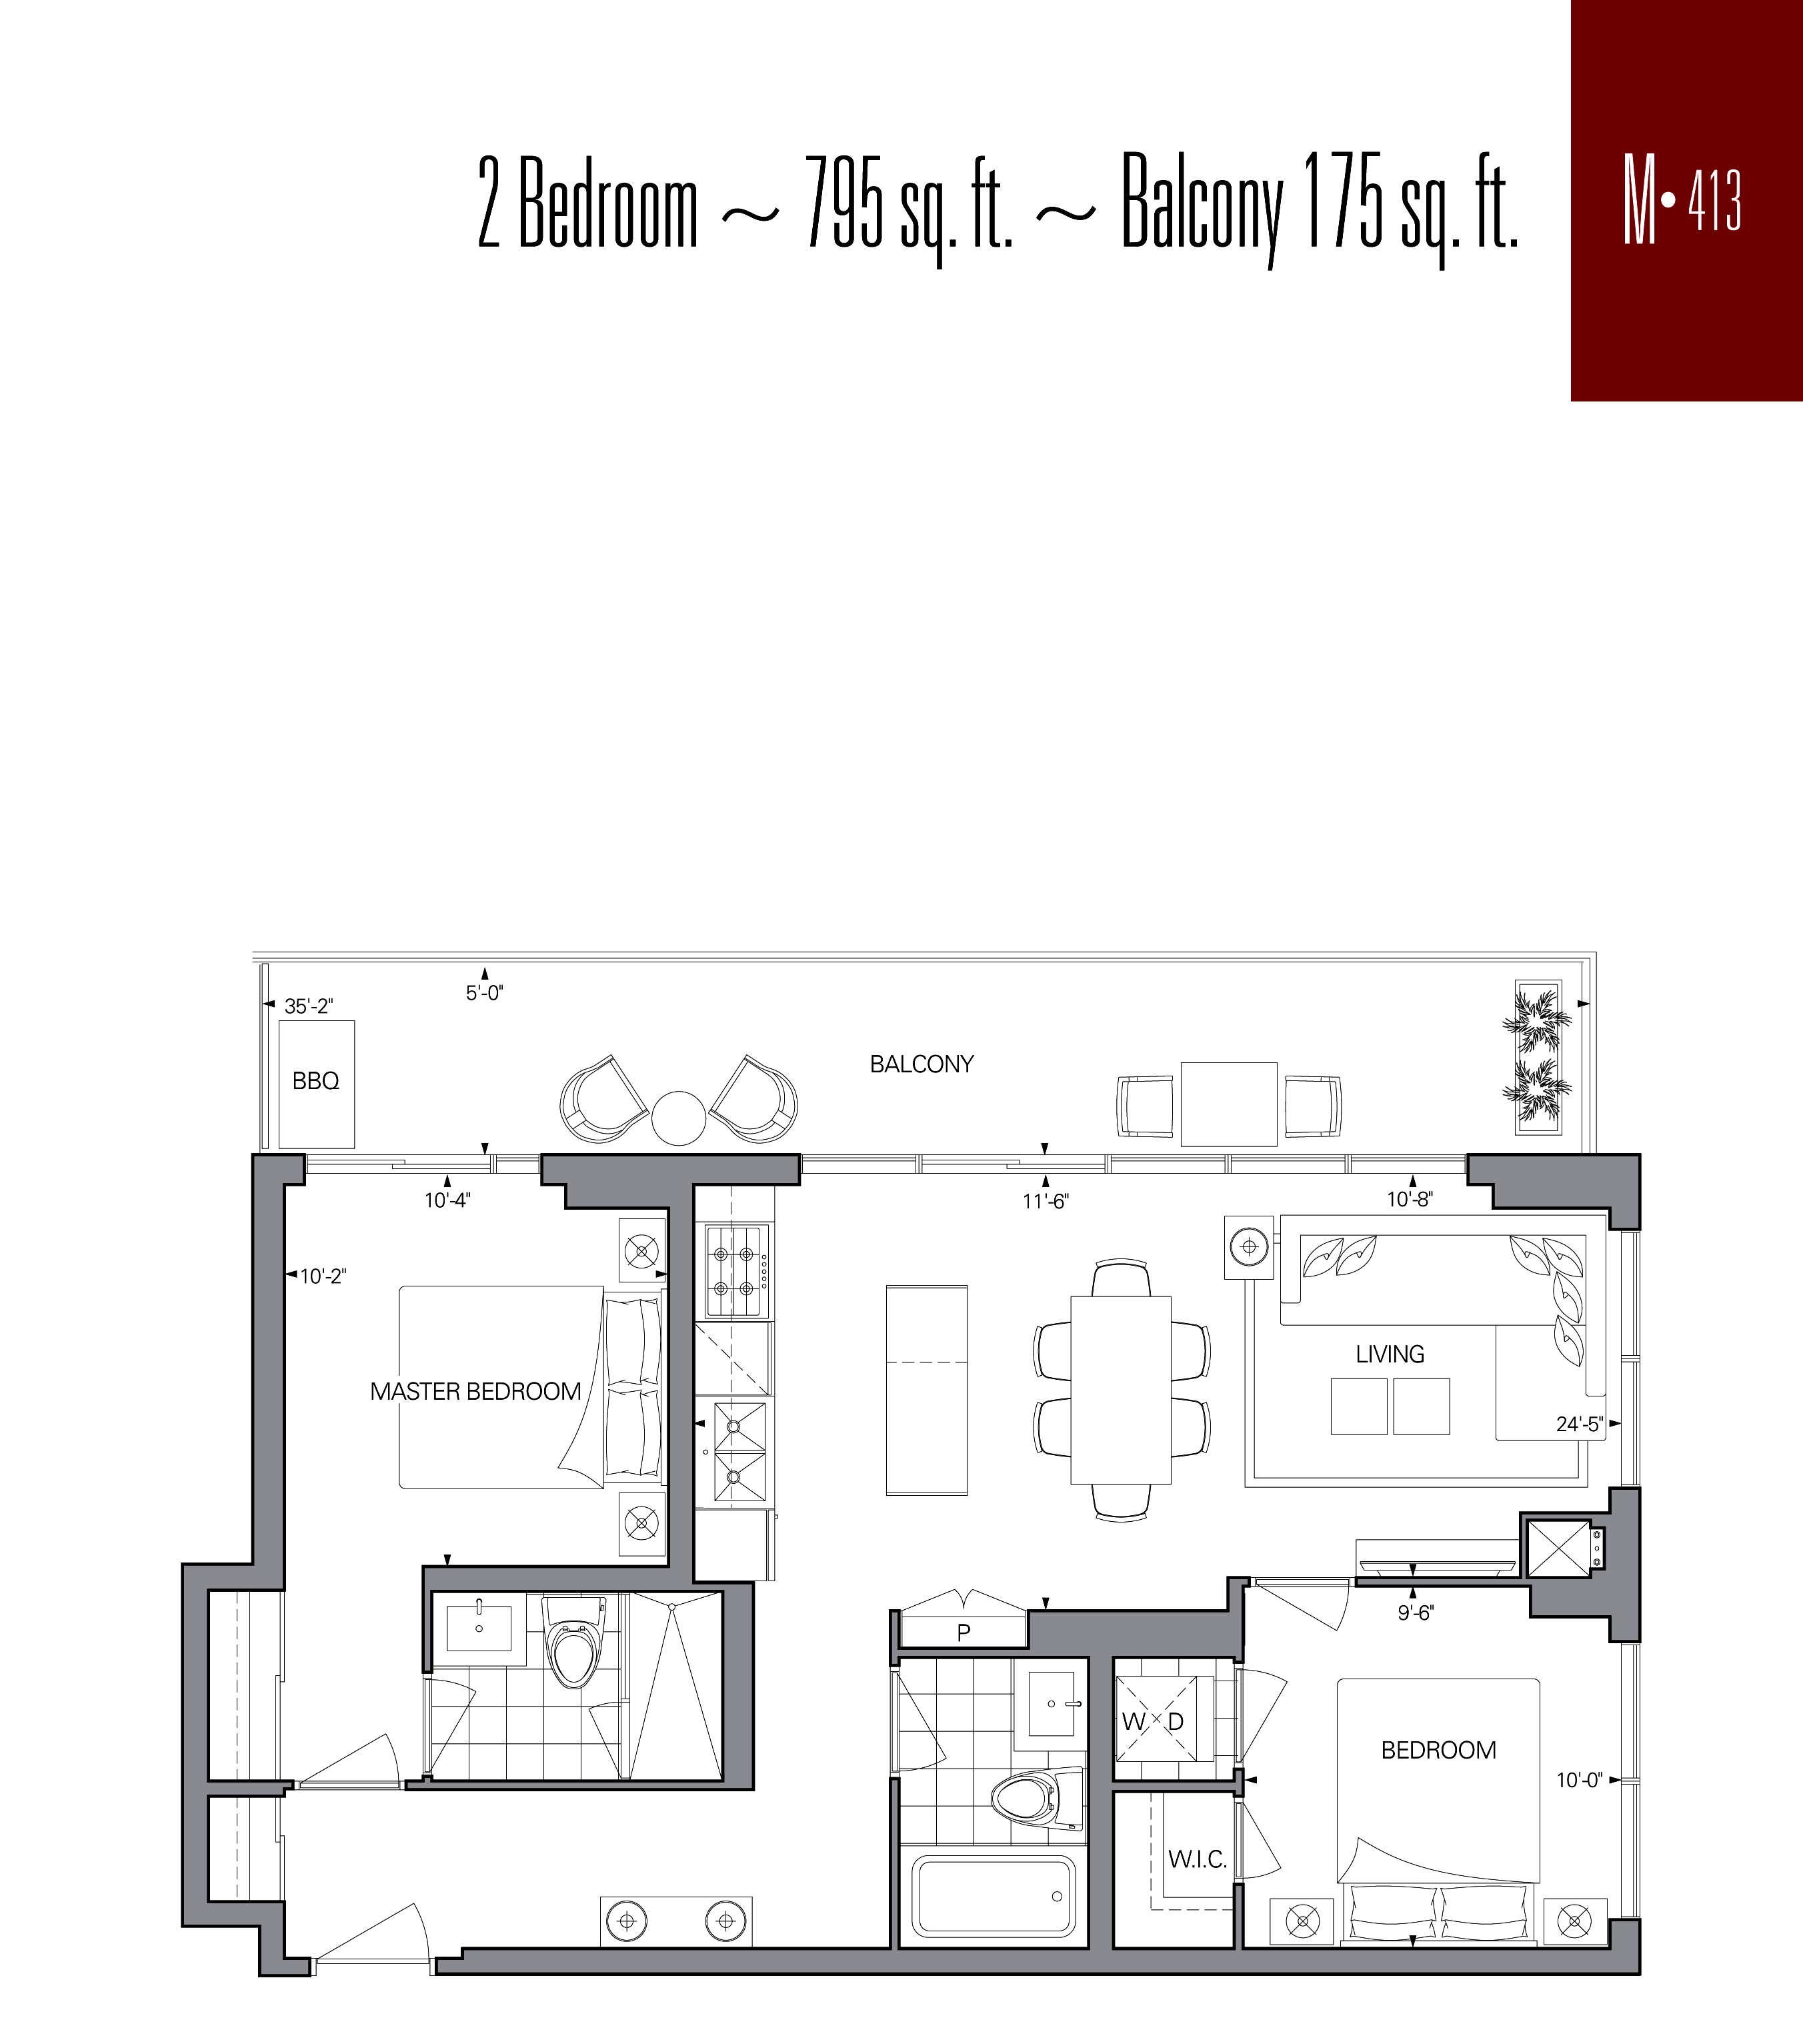 RISE CONDOS - FLOORPLANS TWO BED 795 SQ FT - CONTACT YOSSI KAPLAN